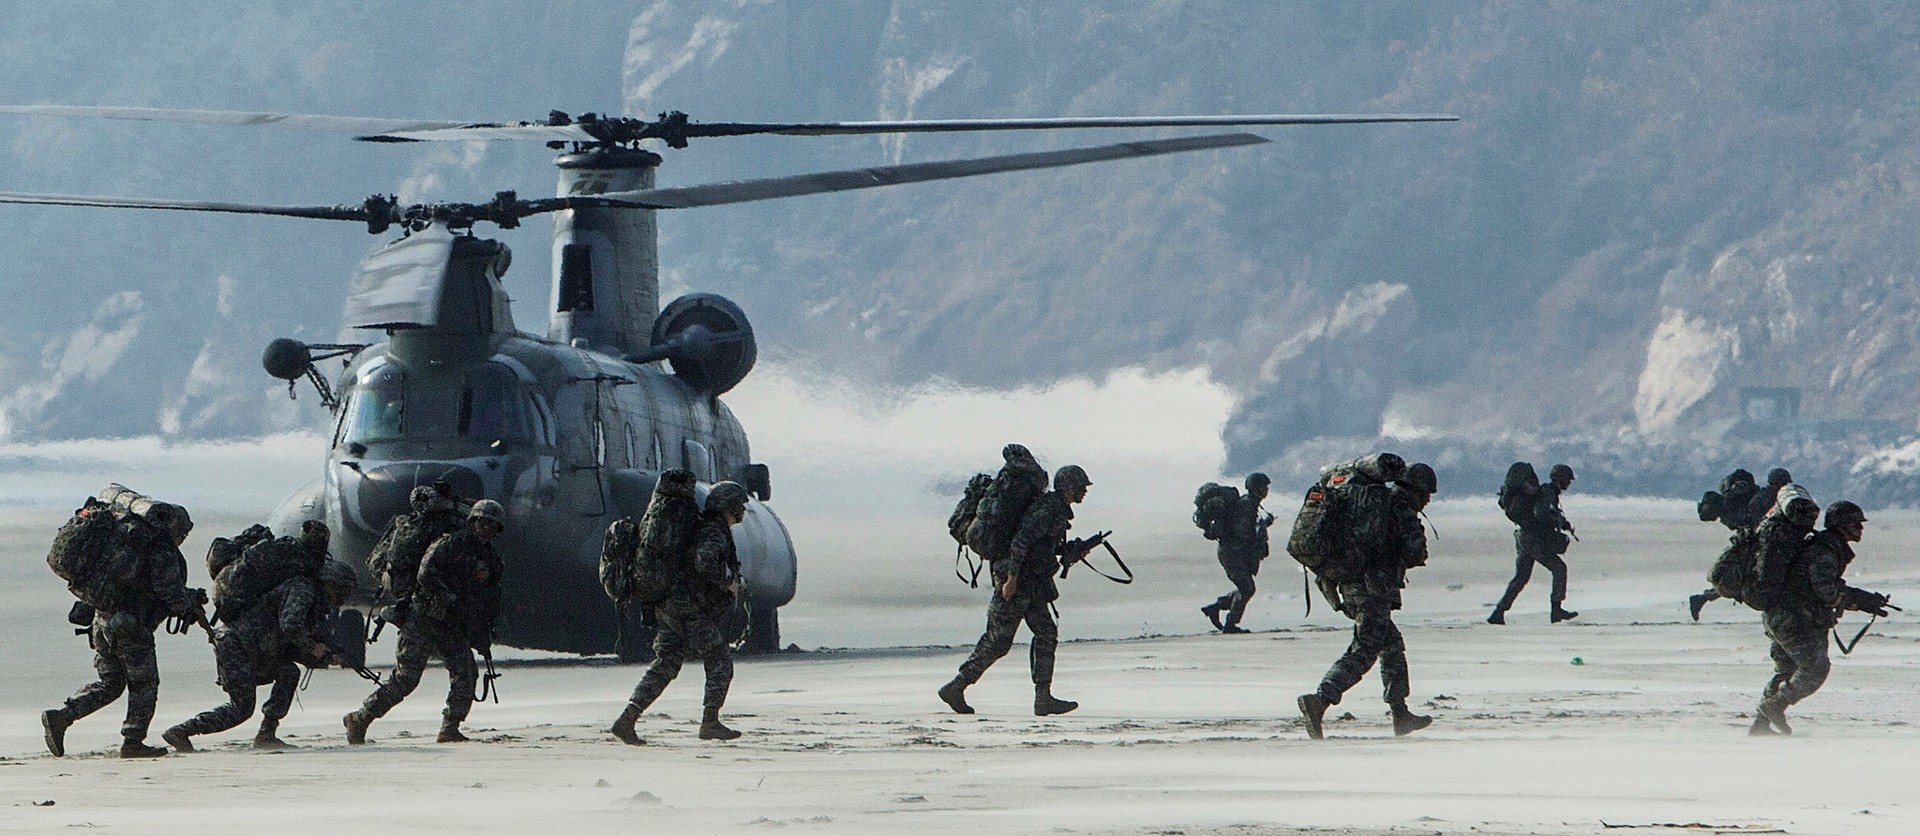 General 1920x836 military helicopters beach soldier Boeing CH-47 Chinook South Korea Republic of Korea Armed Forces military aircraft